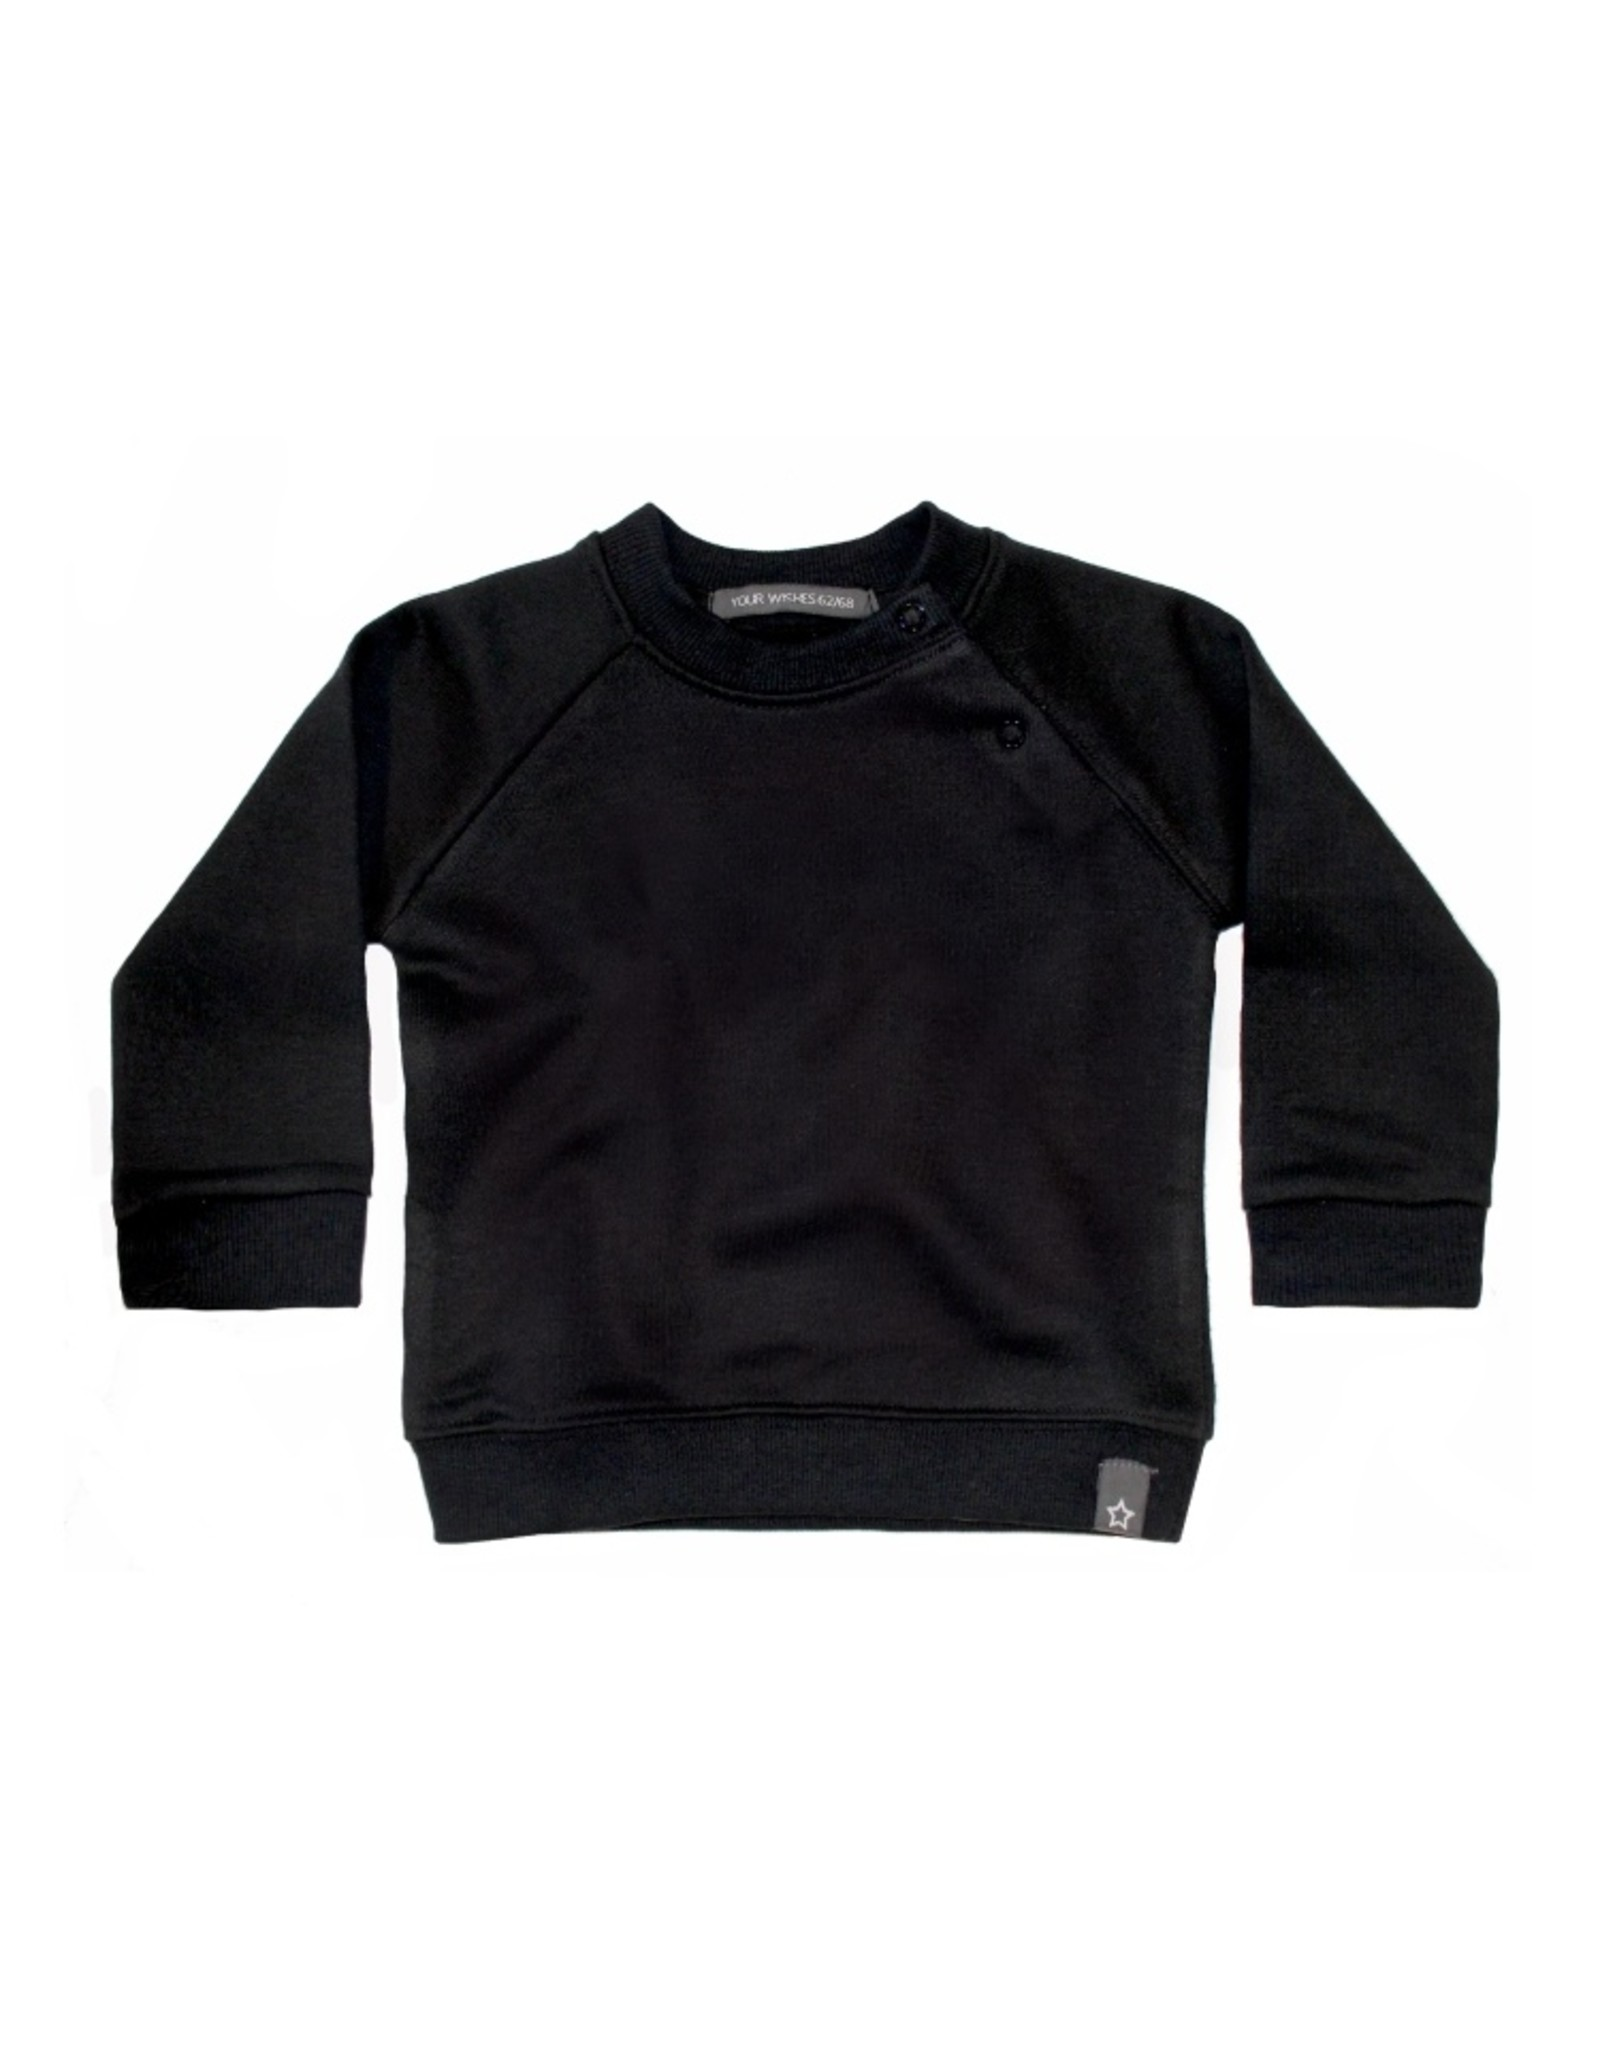 Your Wishes Solid | Sweater Black